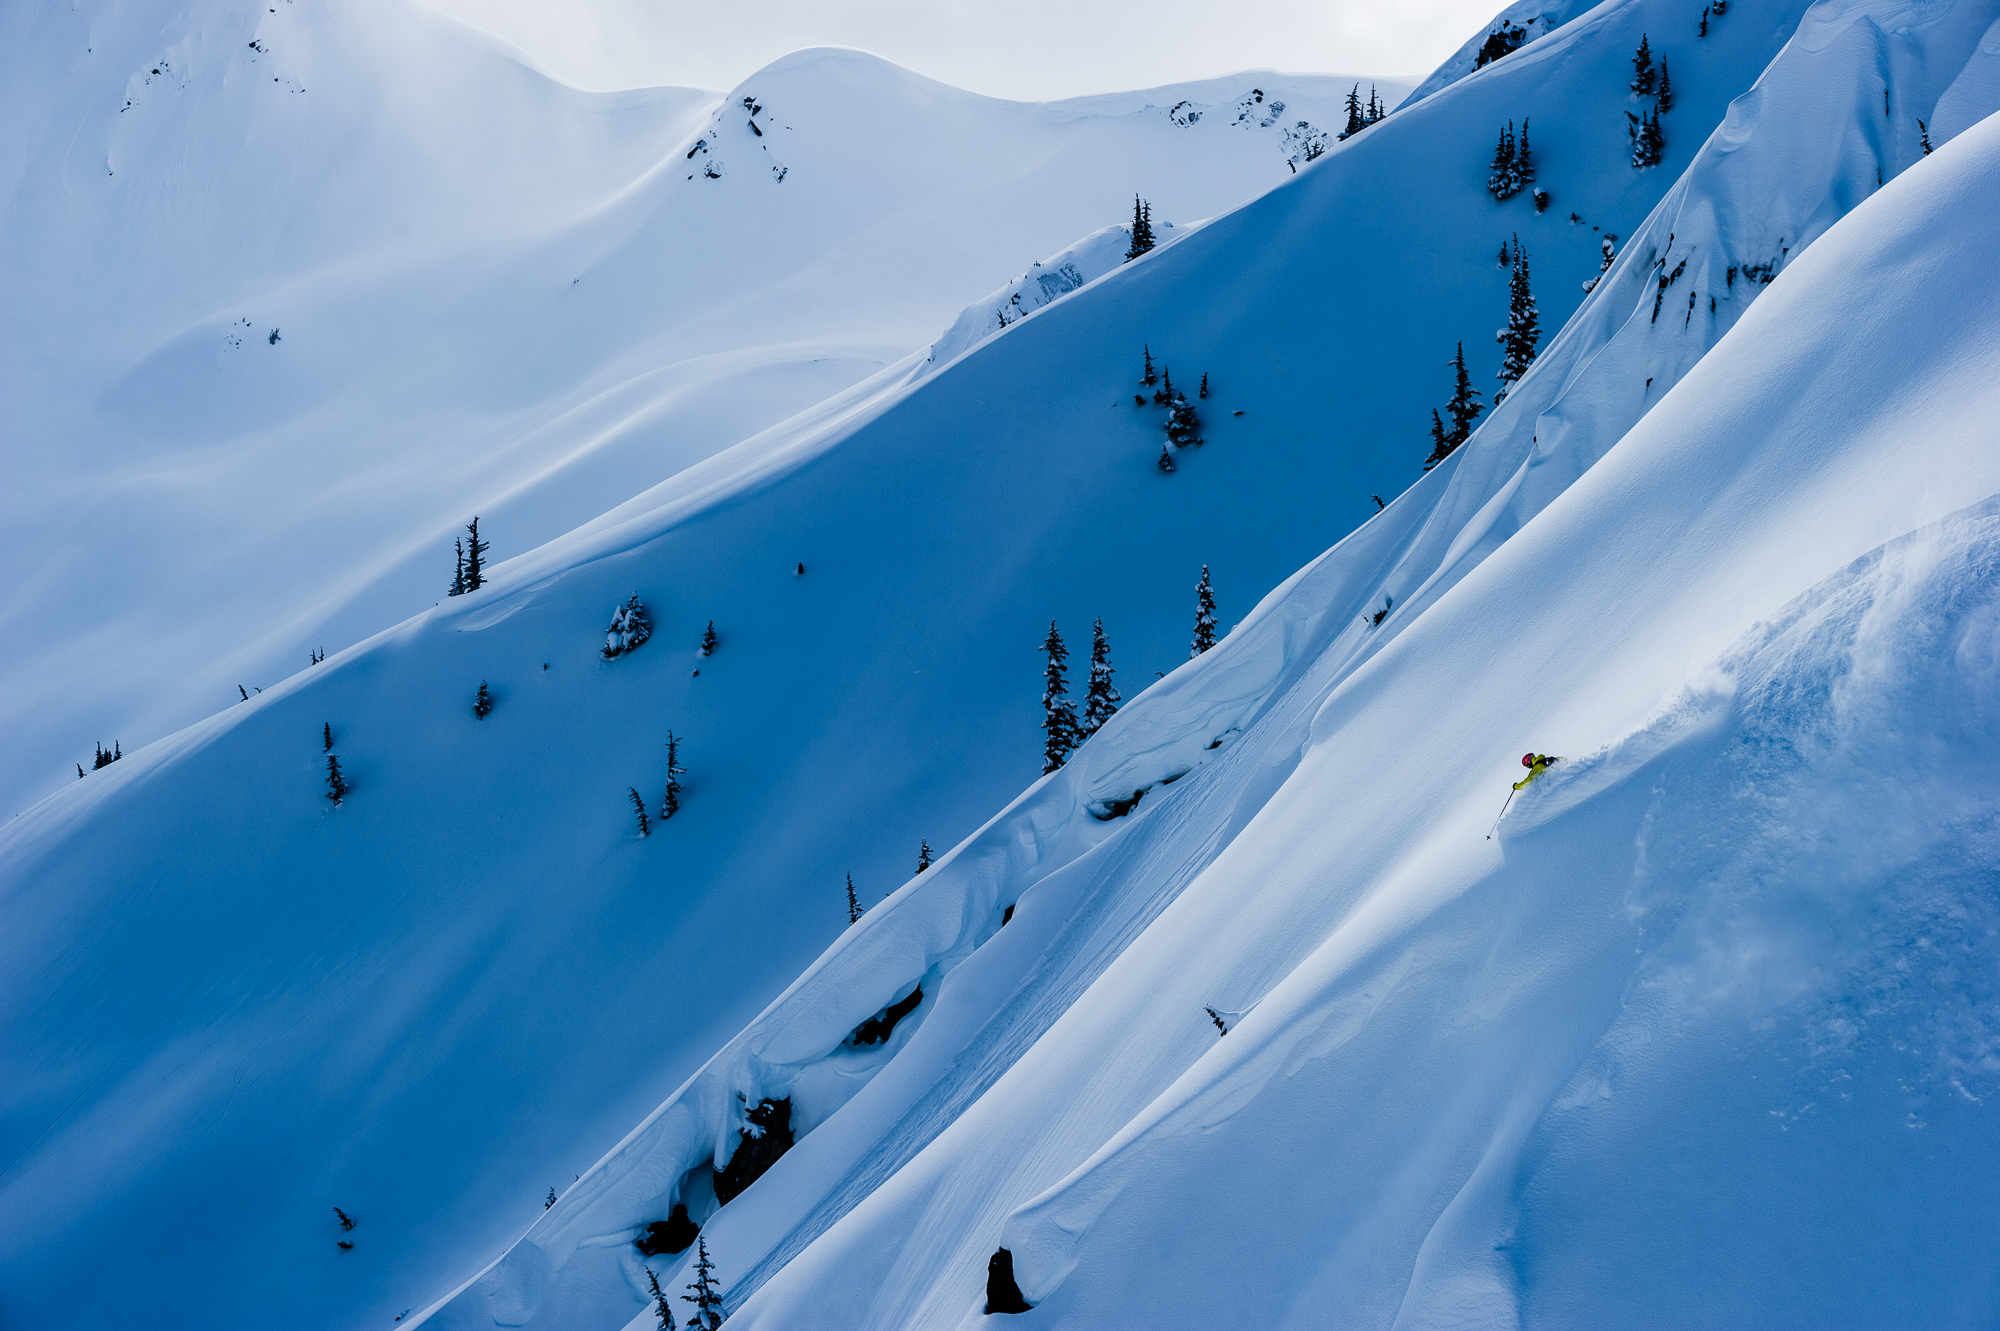 Mattias Fredriksson shot this beautiful photo of Cody Townsend in British Columbia. Browse through more of Fredriksson's best photographs in his In Focus gallery. PHOTO: Mattias Fredriksson